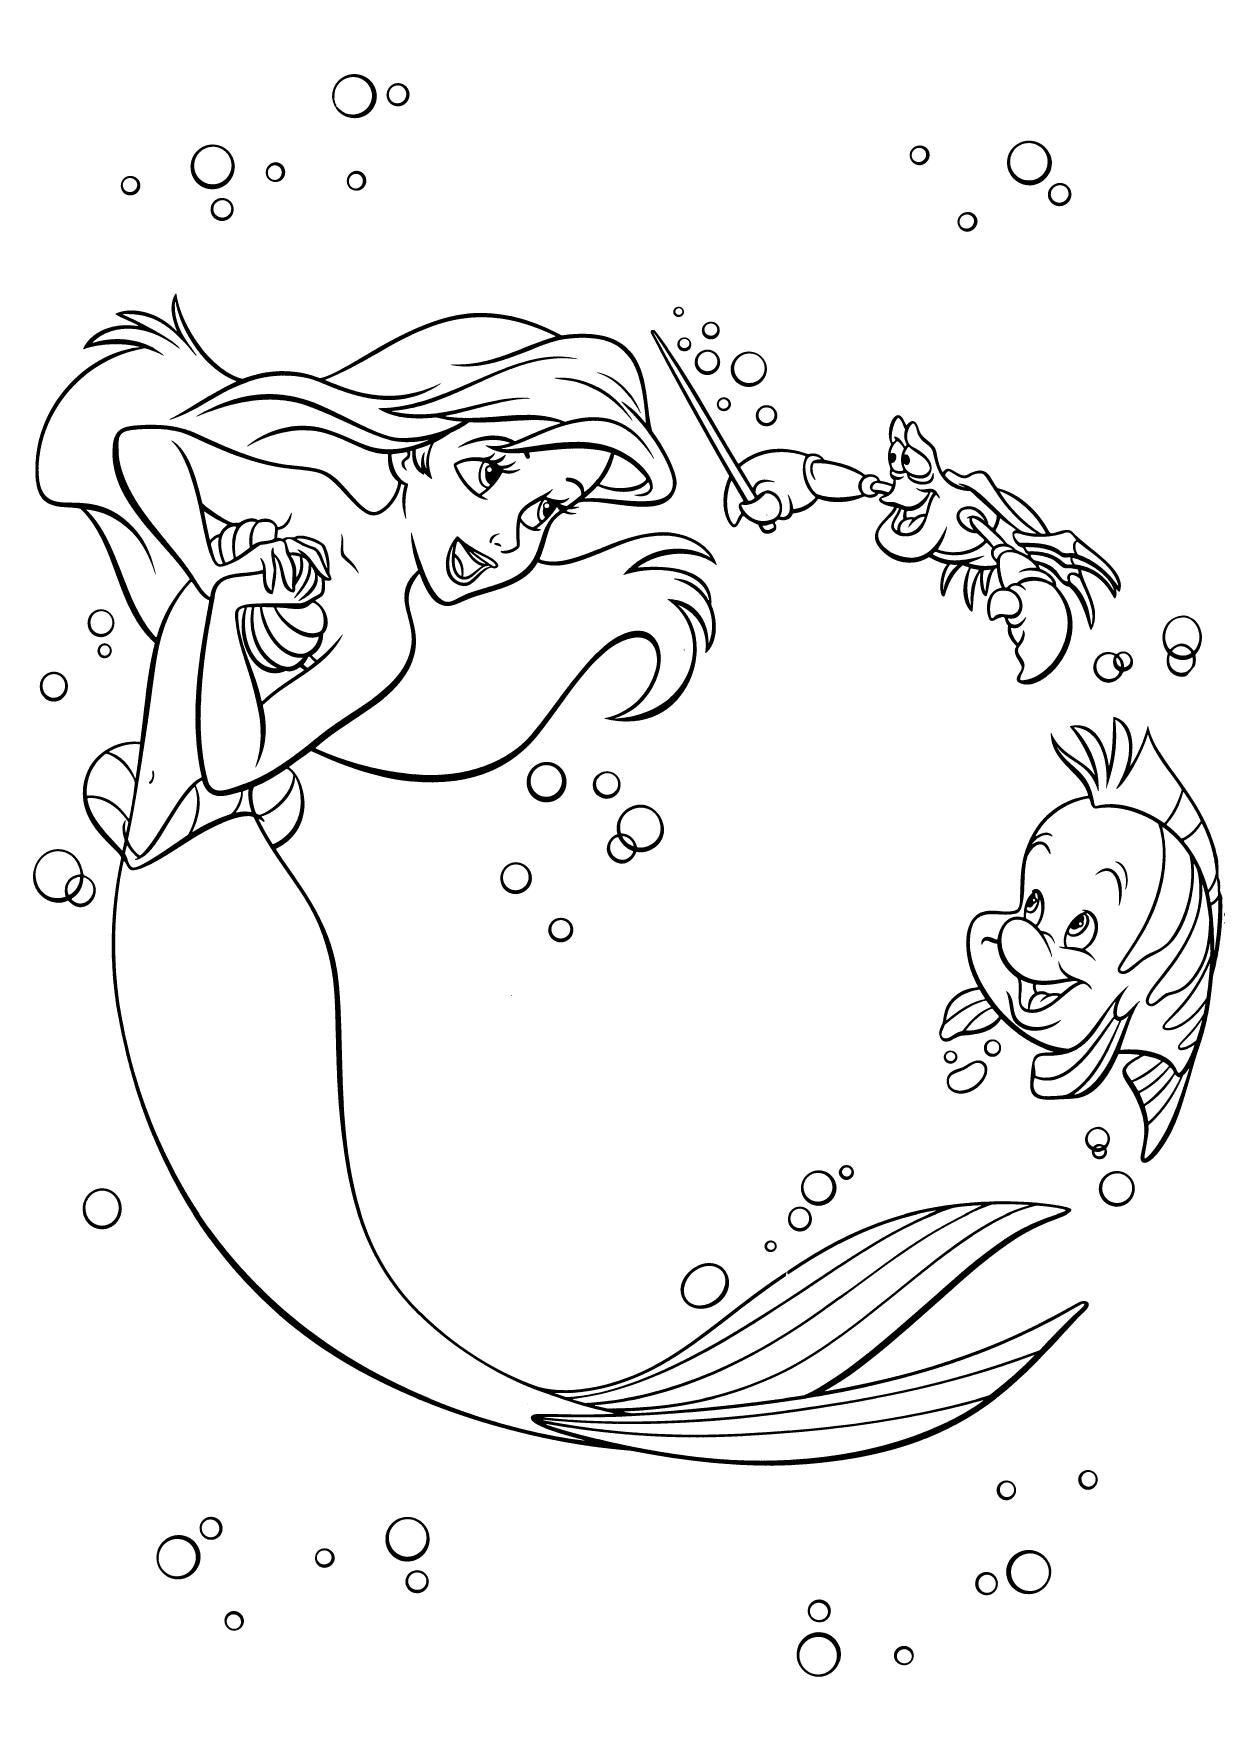 Coloring Pages For Kids Pdf Disney Coloring Book Pdf Ly Coloring Pages In 2020 Ariel Coloring Pages Princess Coloring Pages Disney Princess Coloring Pages